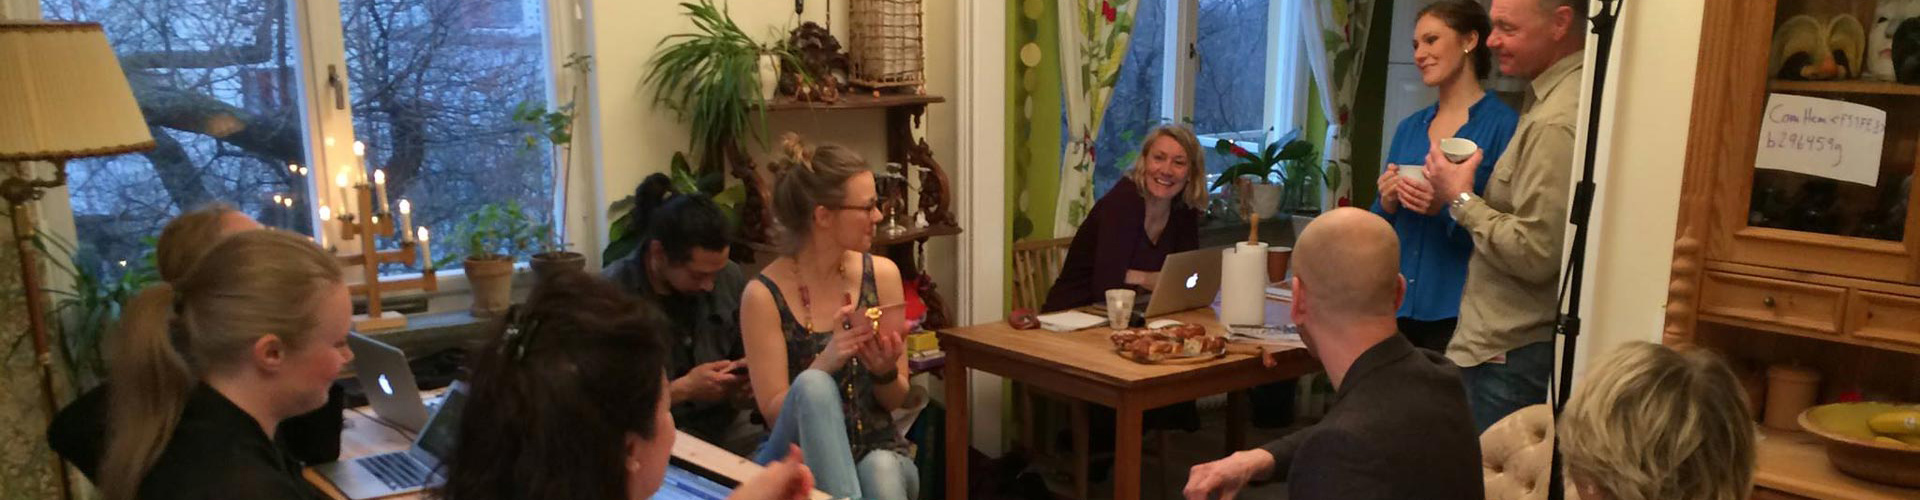 Coworking events: Winchester Jelly and Freelance Friday